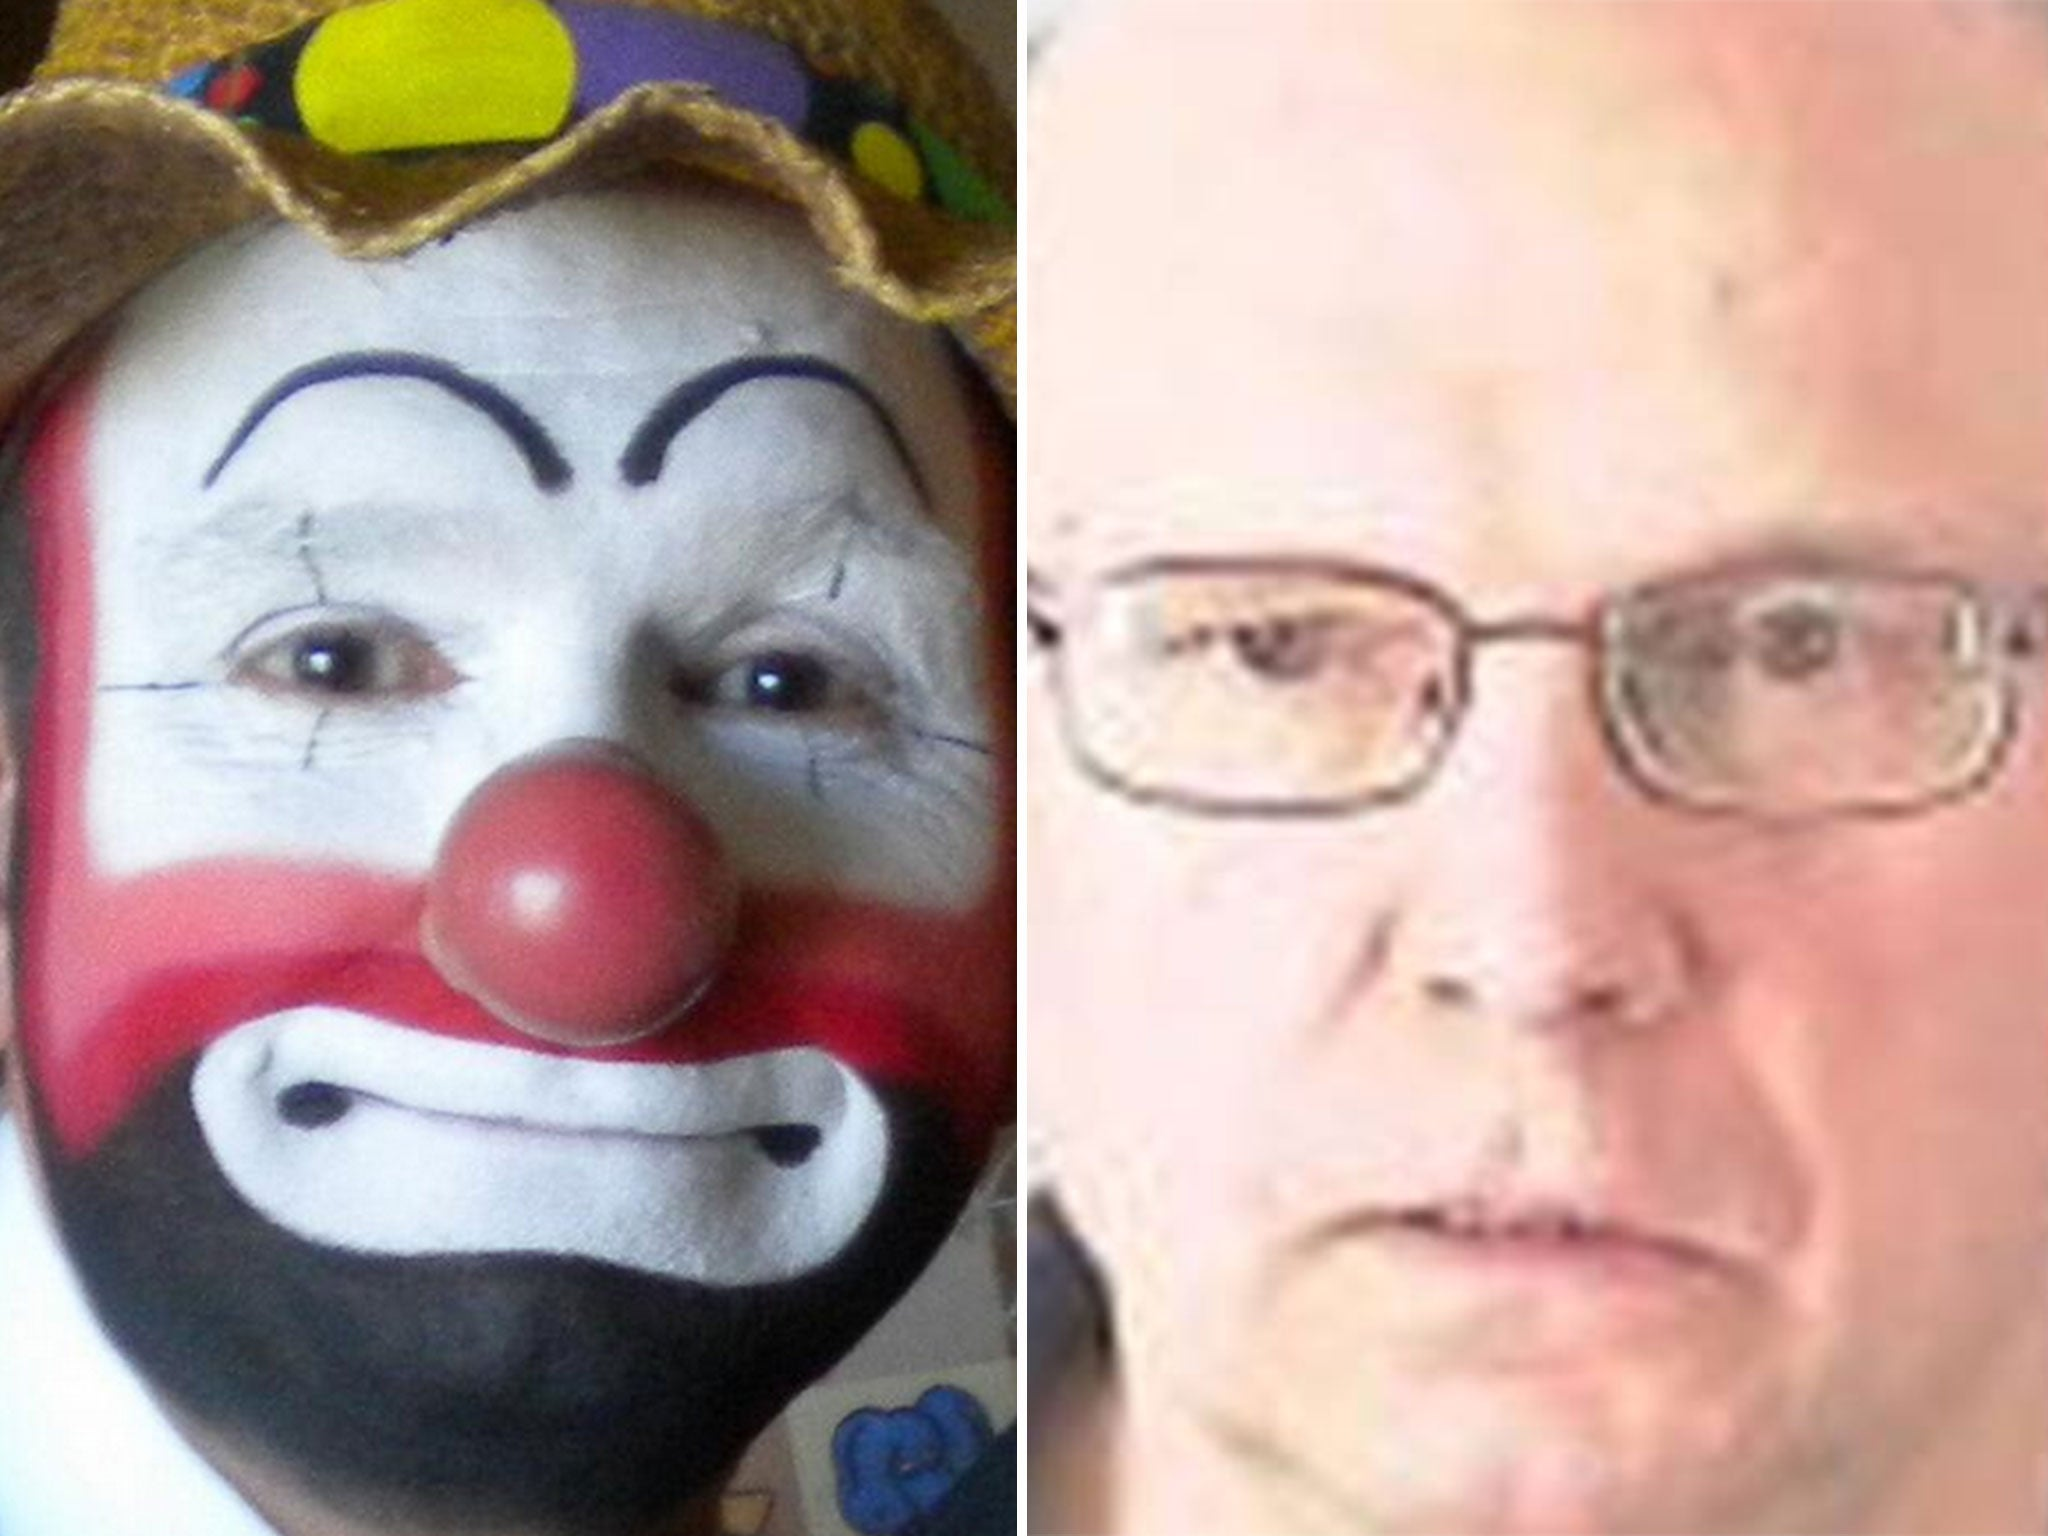 'friendly The Clown' Accused Of Raping A Mentally Impaired Woman Recovering  From Brain Injury  The Independent